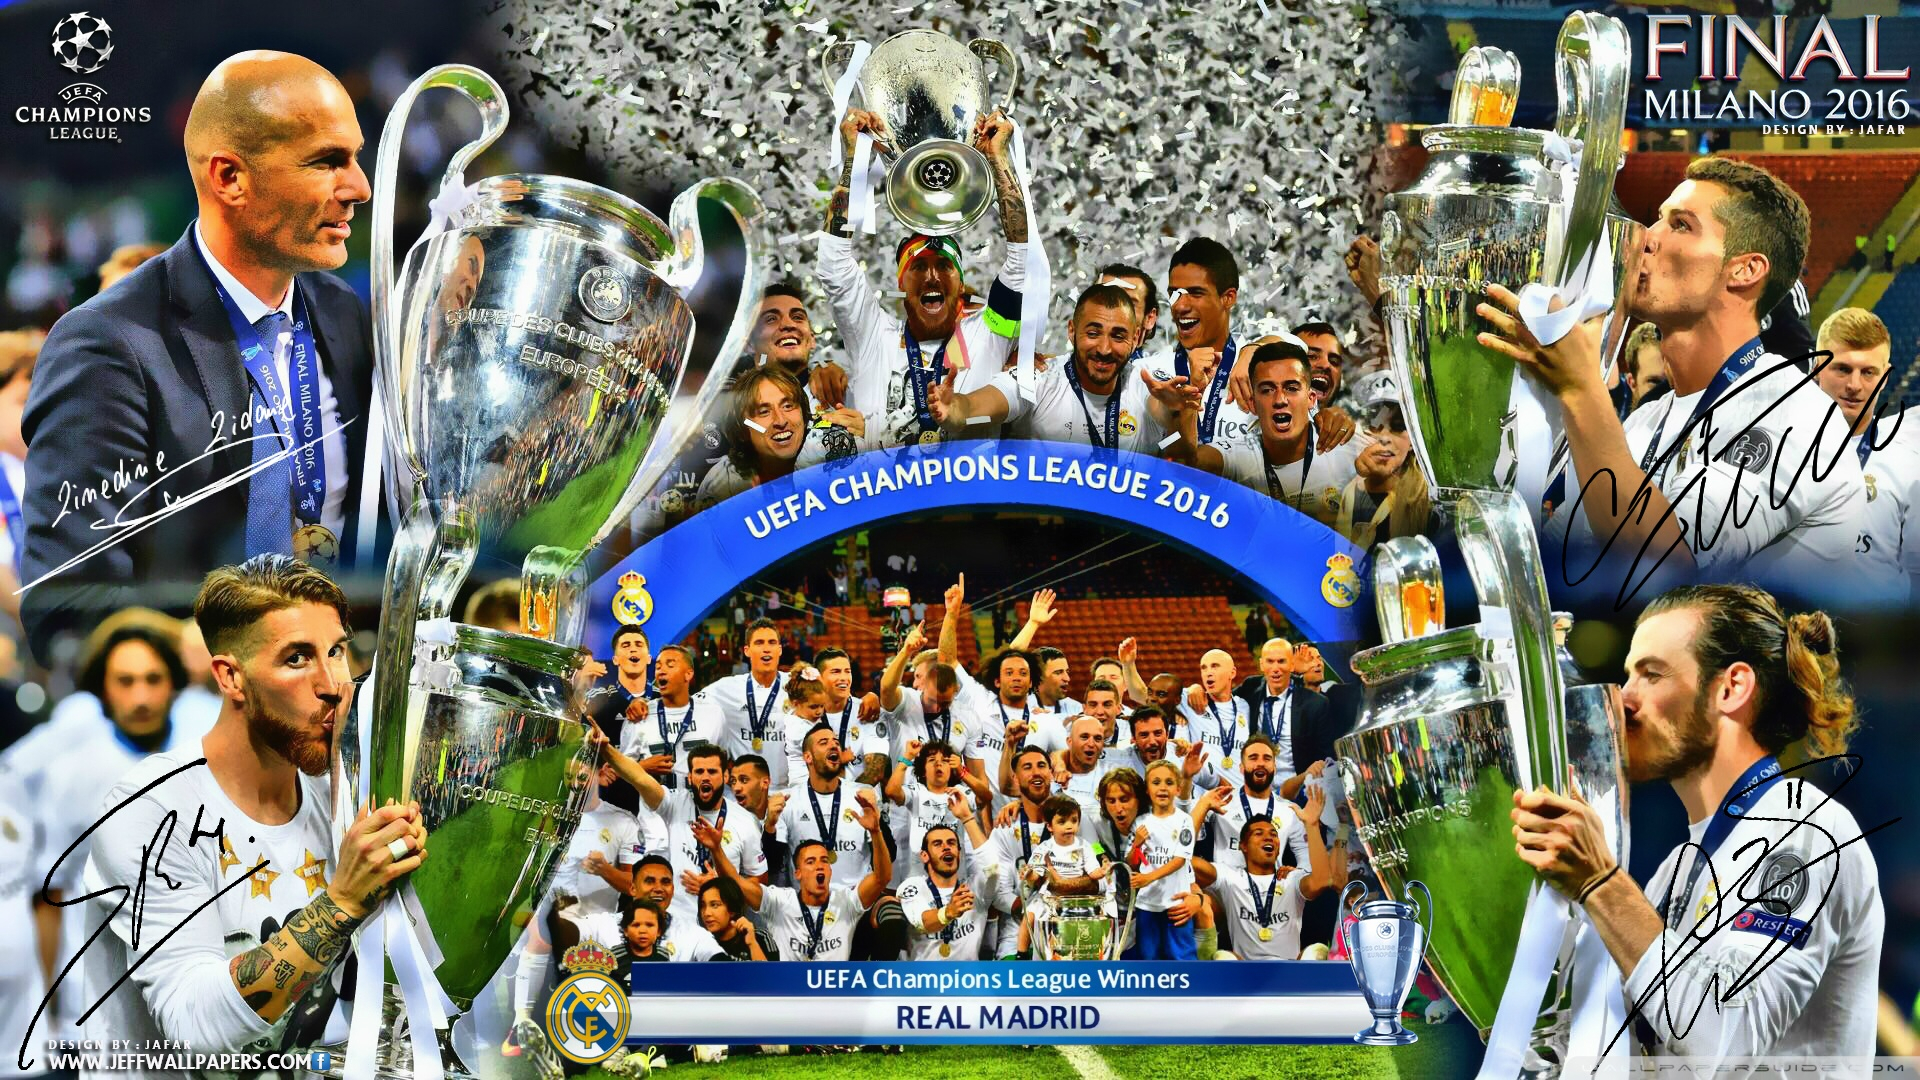 real madrid champions league winners 2016 ❤ 4k hd desktop wallpaper